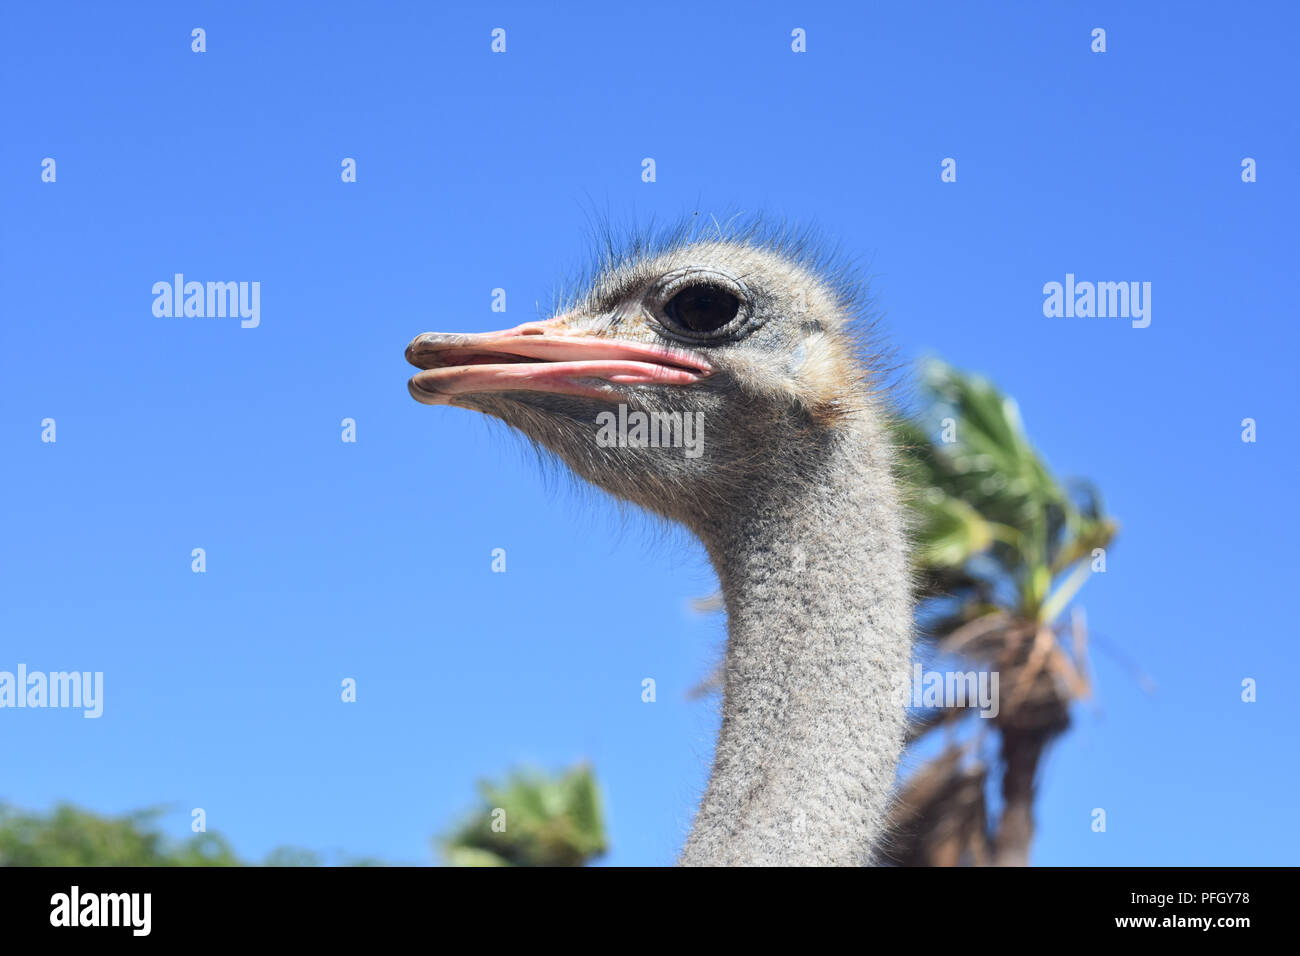 Side view of a large common ostrich. Stock Photo